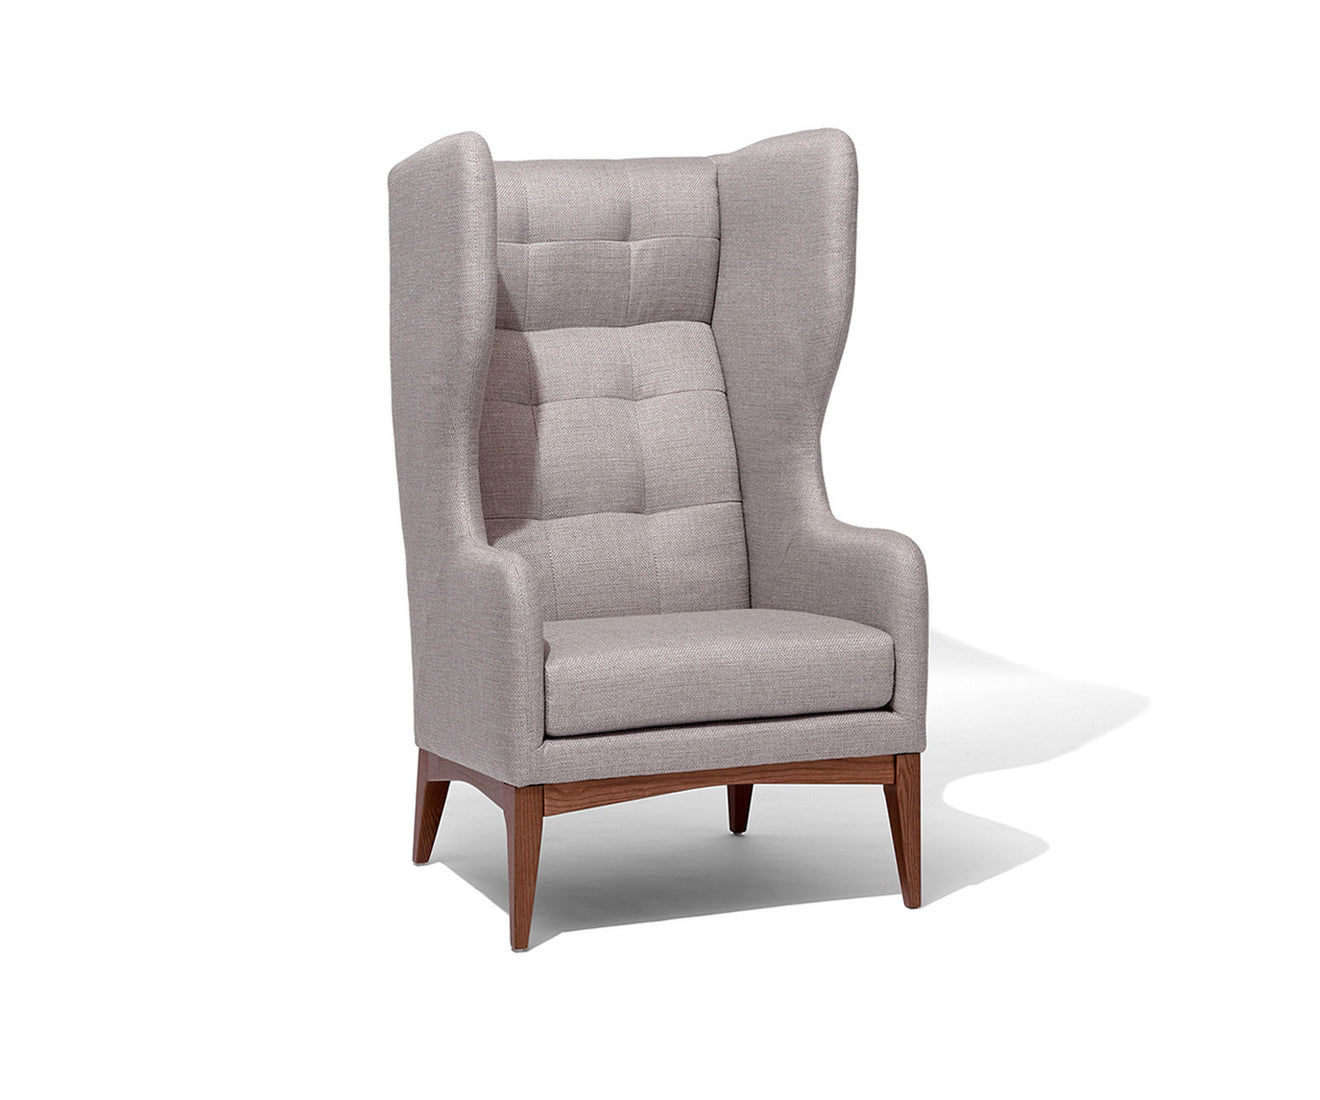 James Harrison XL Wing Chair   Coming Soon